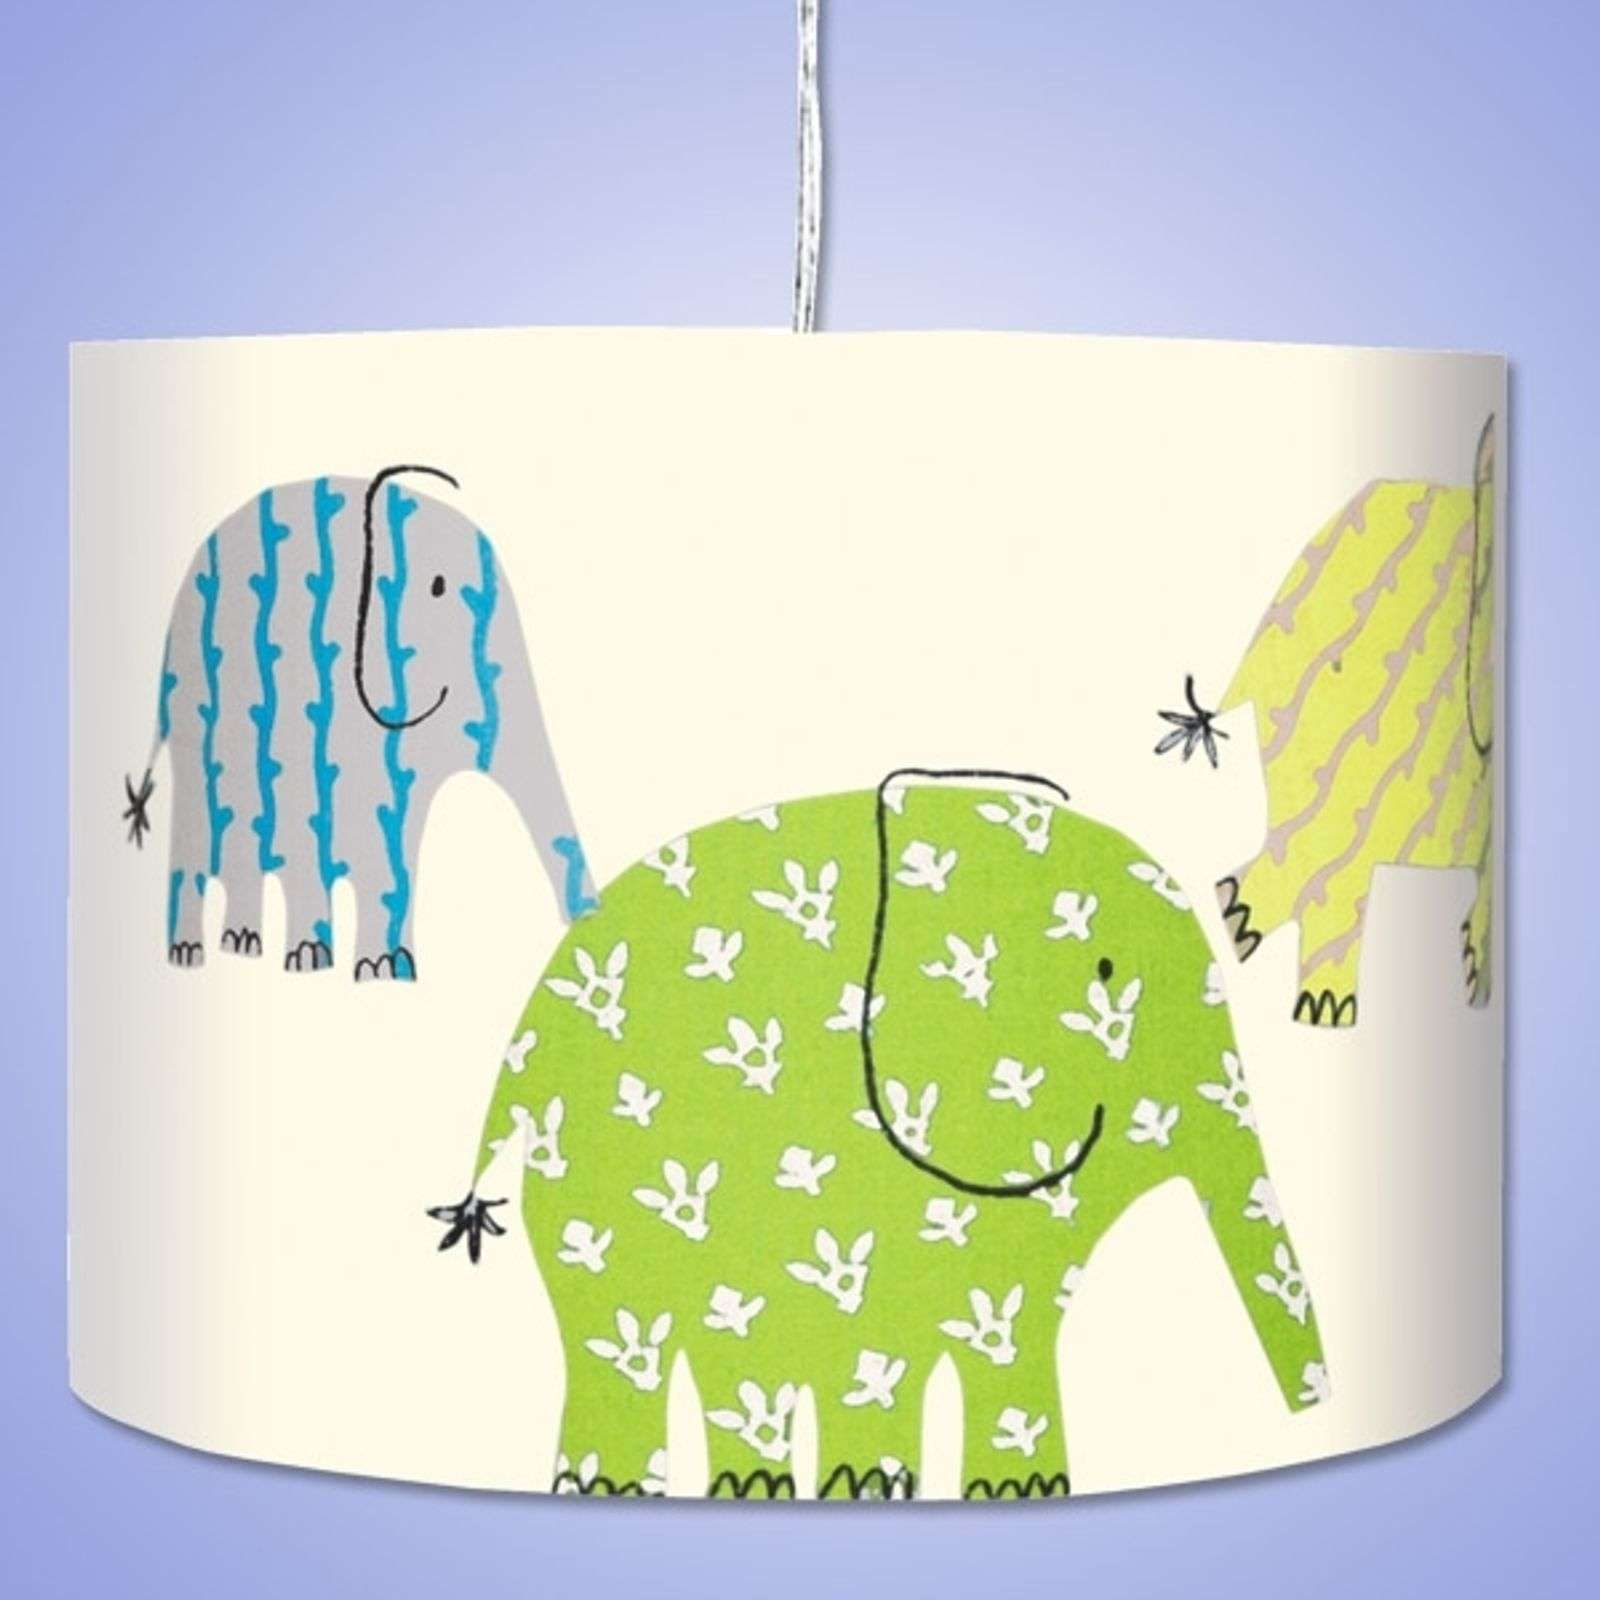 Suspension tendance ELEFANT verte